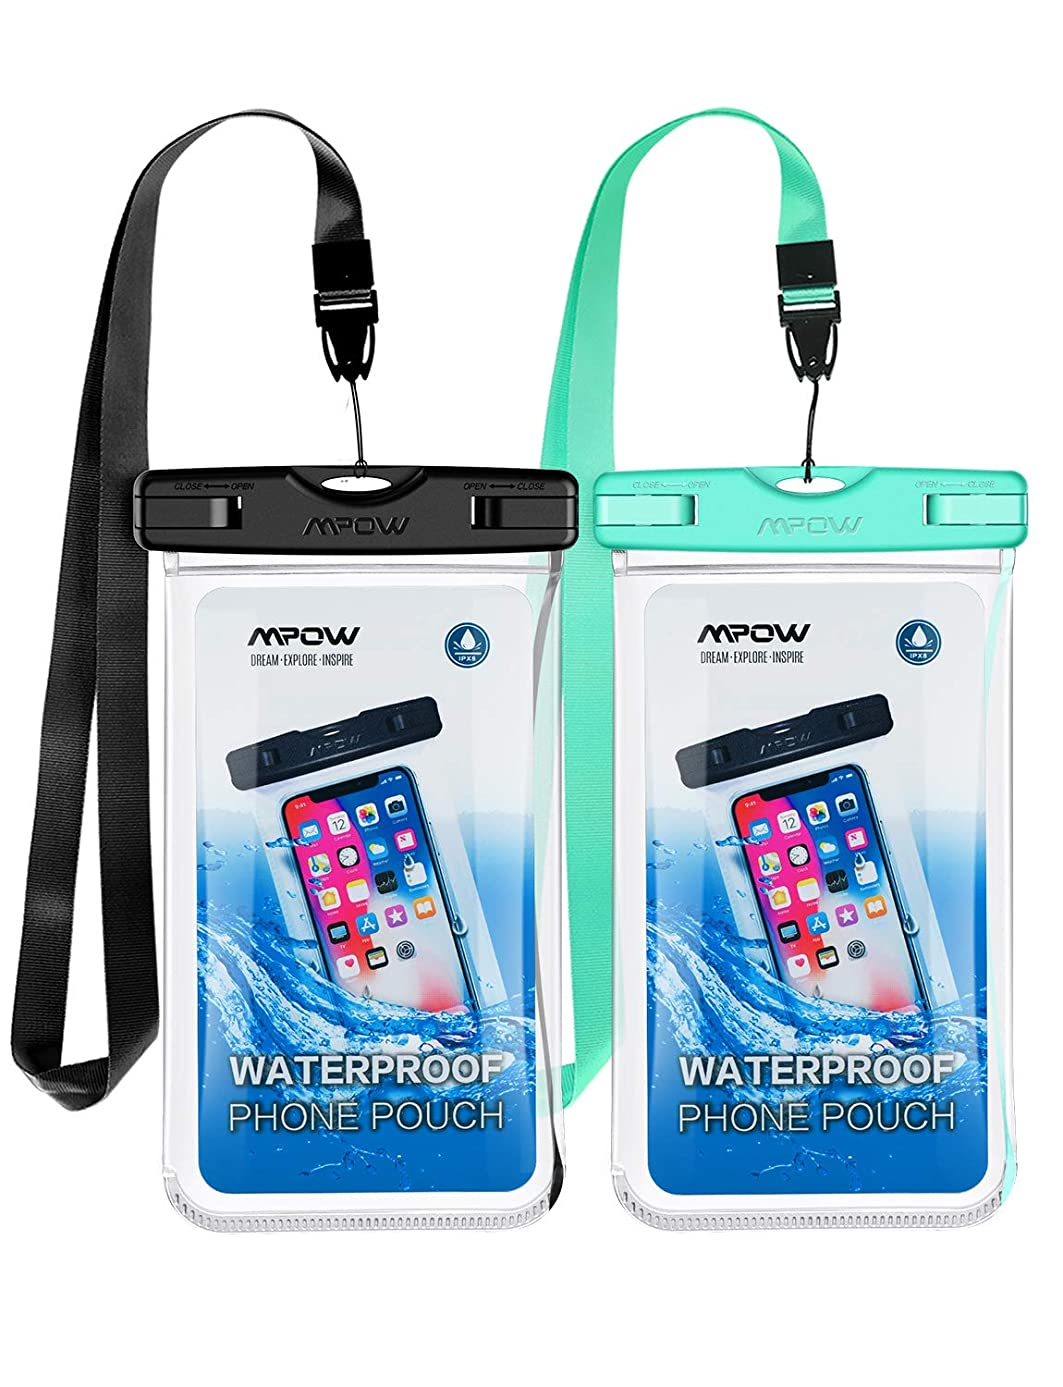 Mpow Waterproof Phone Pouch, Full Transparency IPX8 Cellphone Dry Bag, Underwater Waterproof Underwater Case Compatible with iPhone Xs Max/XS/XR/X/8, Galaxy S10, Note 9, Google up to 6.5